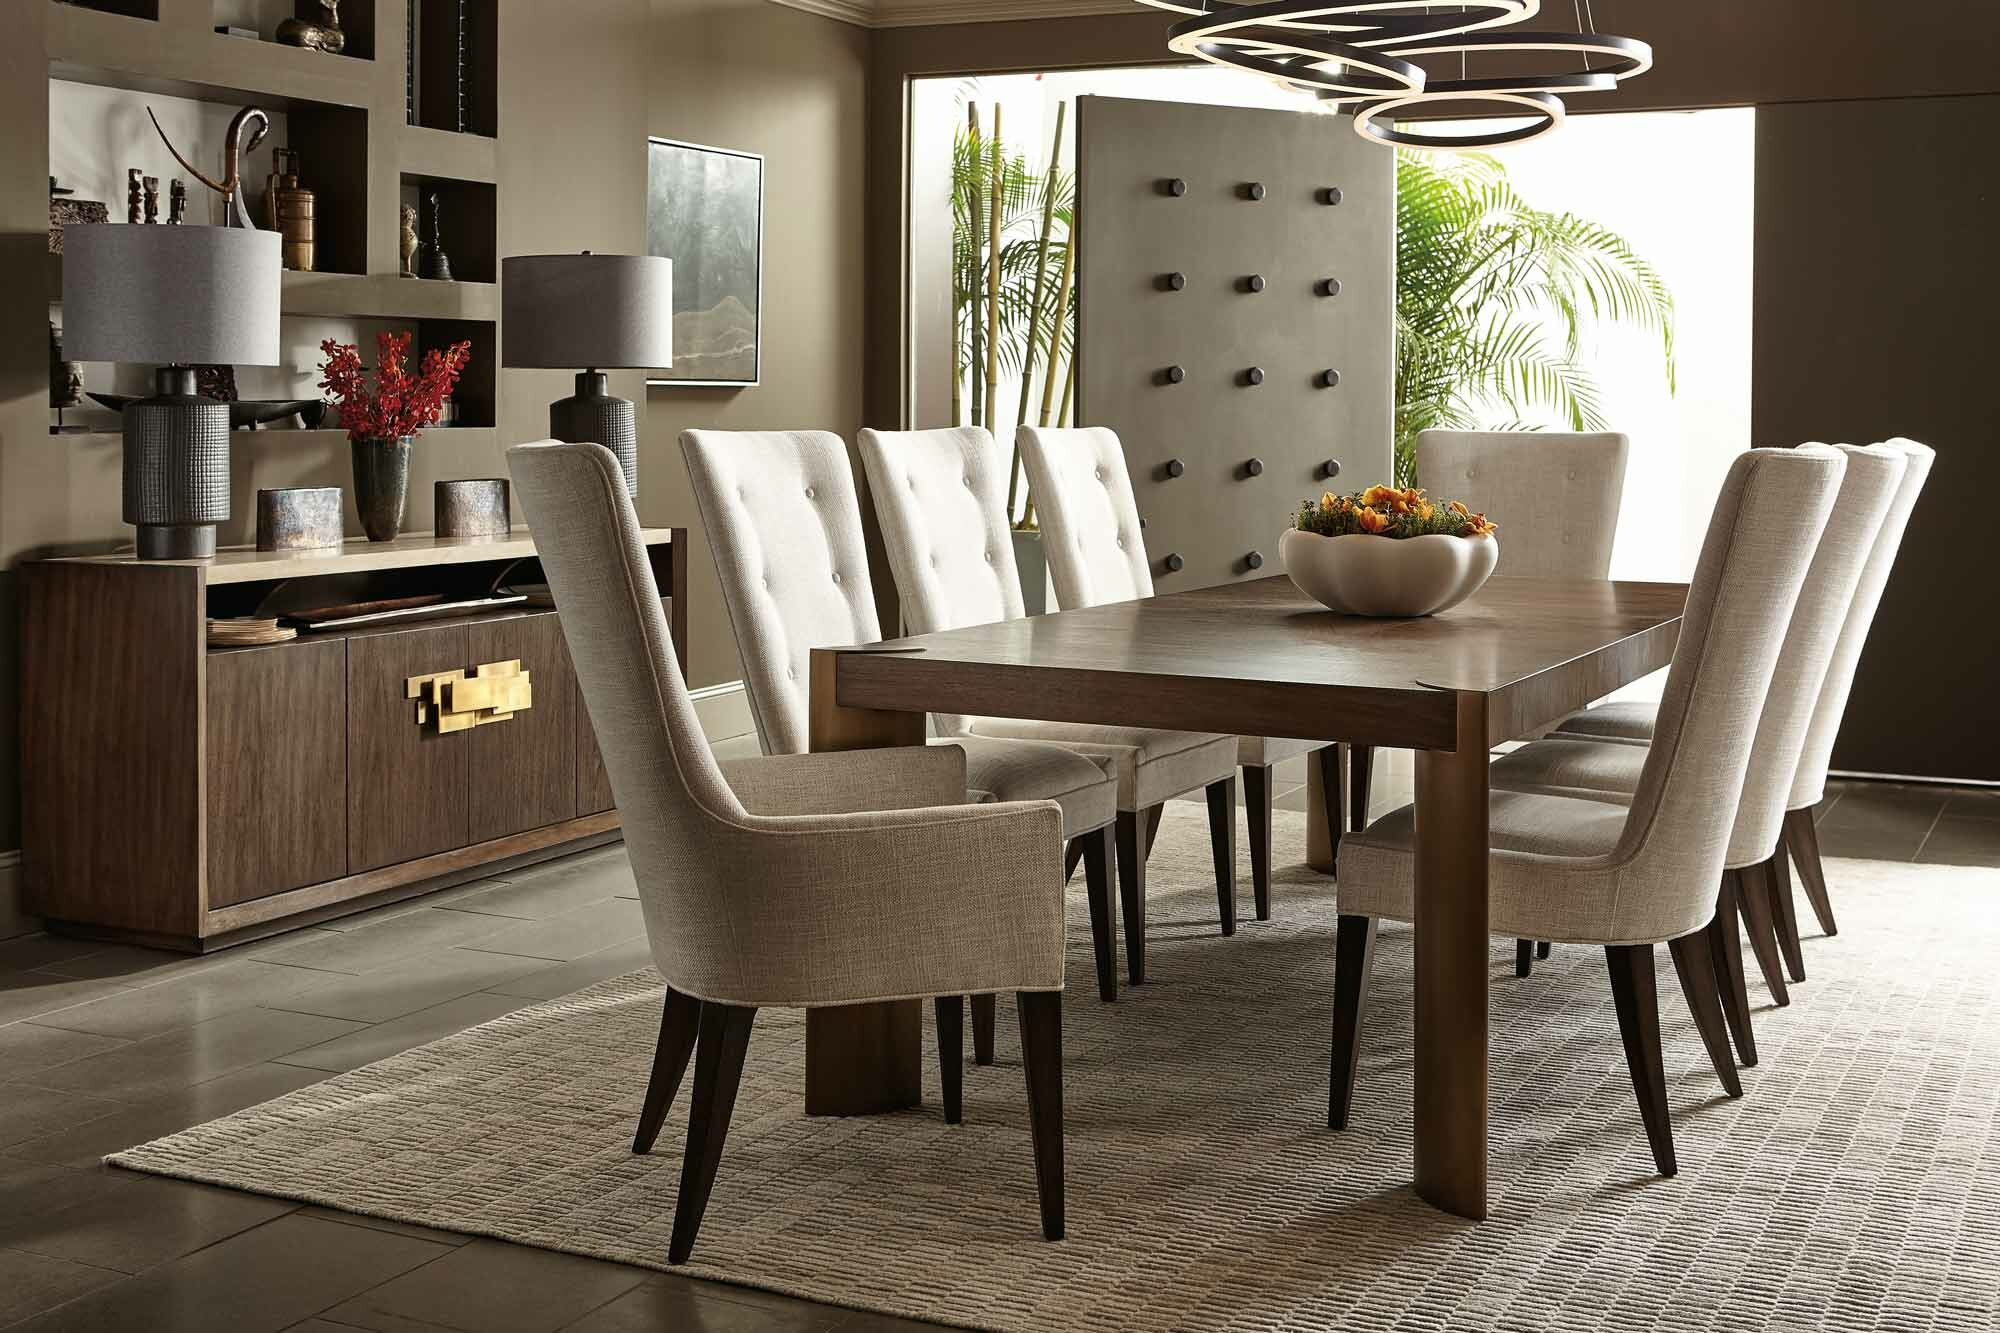 Wondrous Bernhardt Kitchen Dining Room Sets Youll Love In 2019 Interior Design Ideas Philsoteloinfo